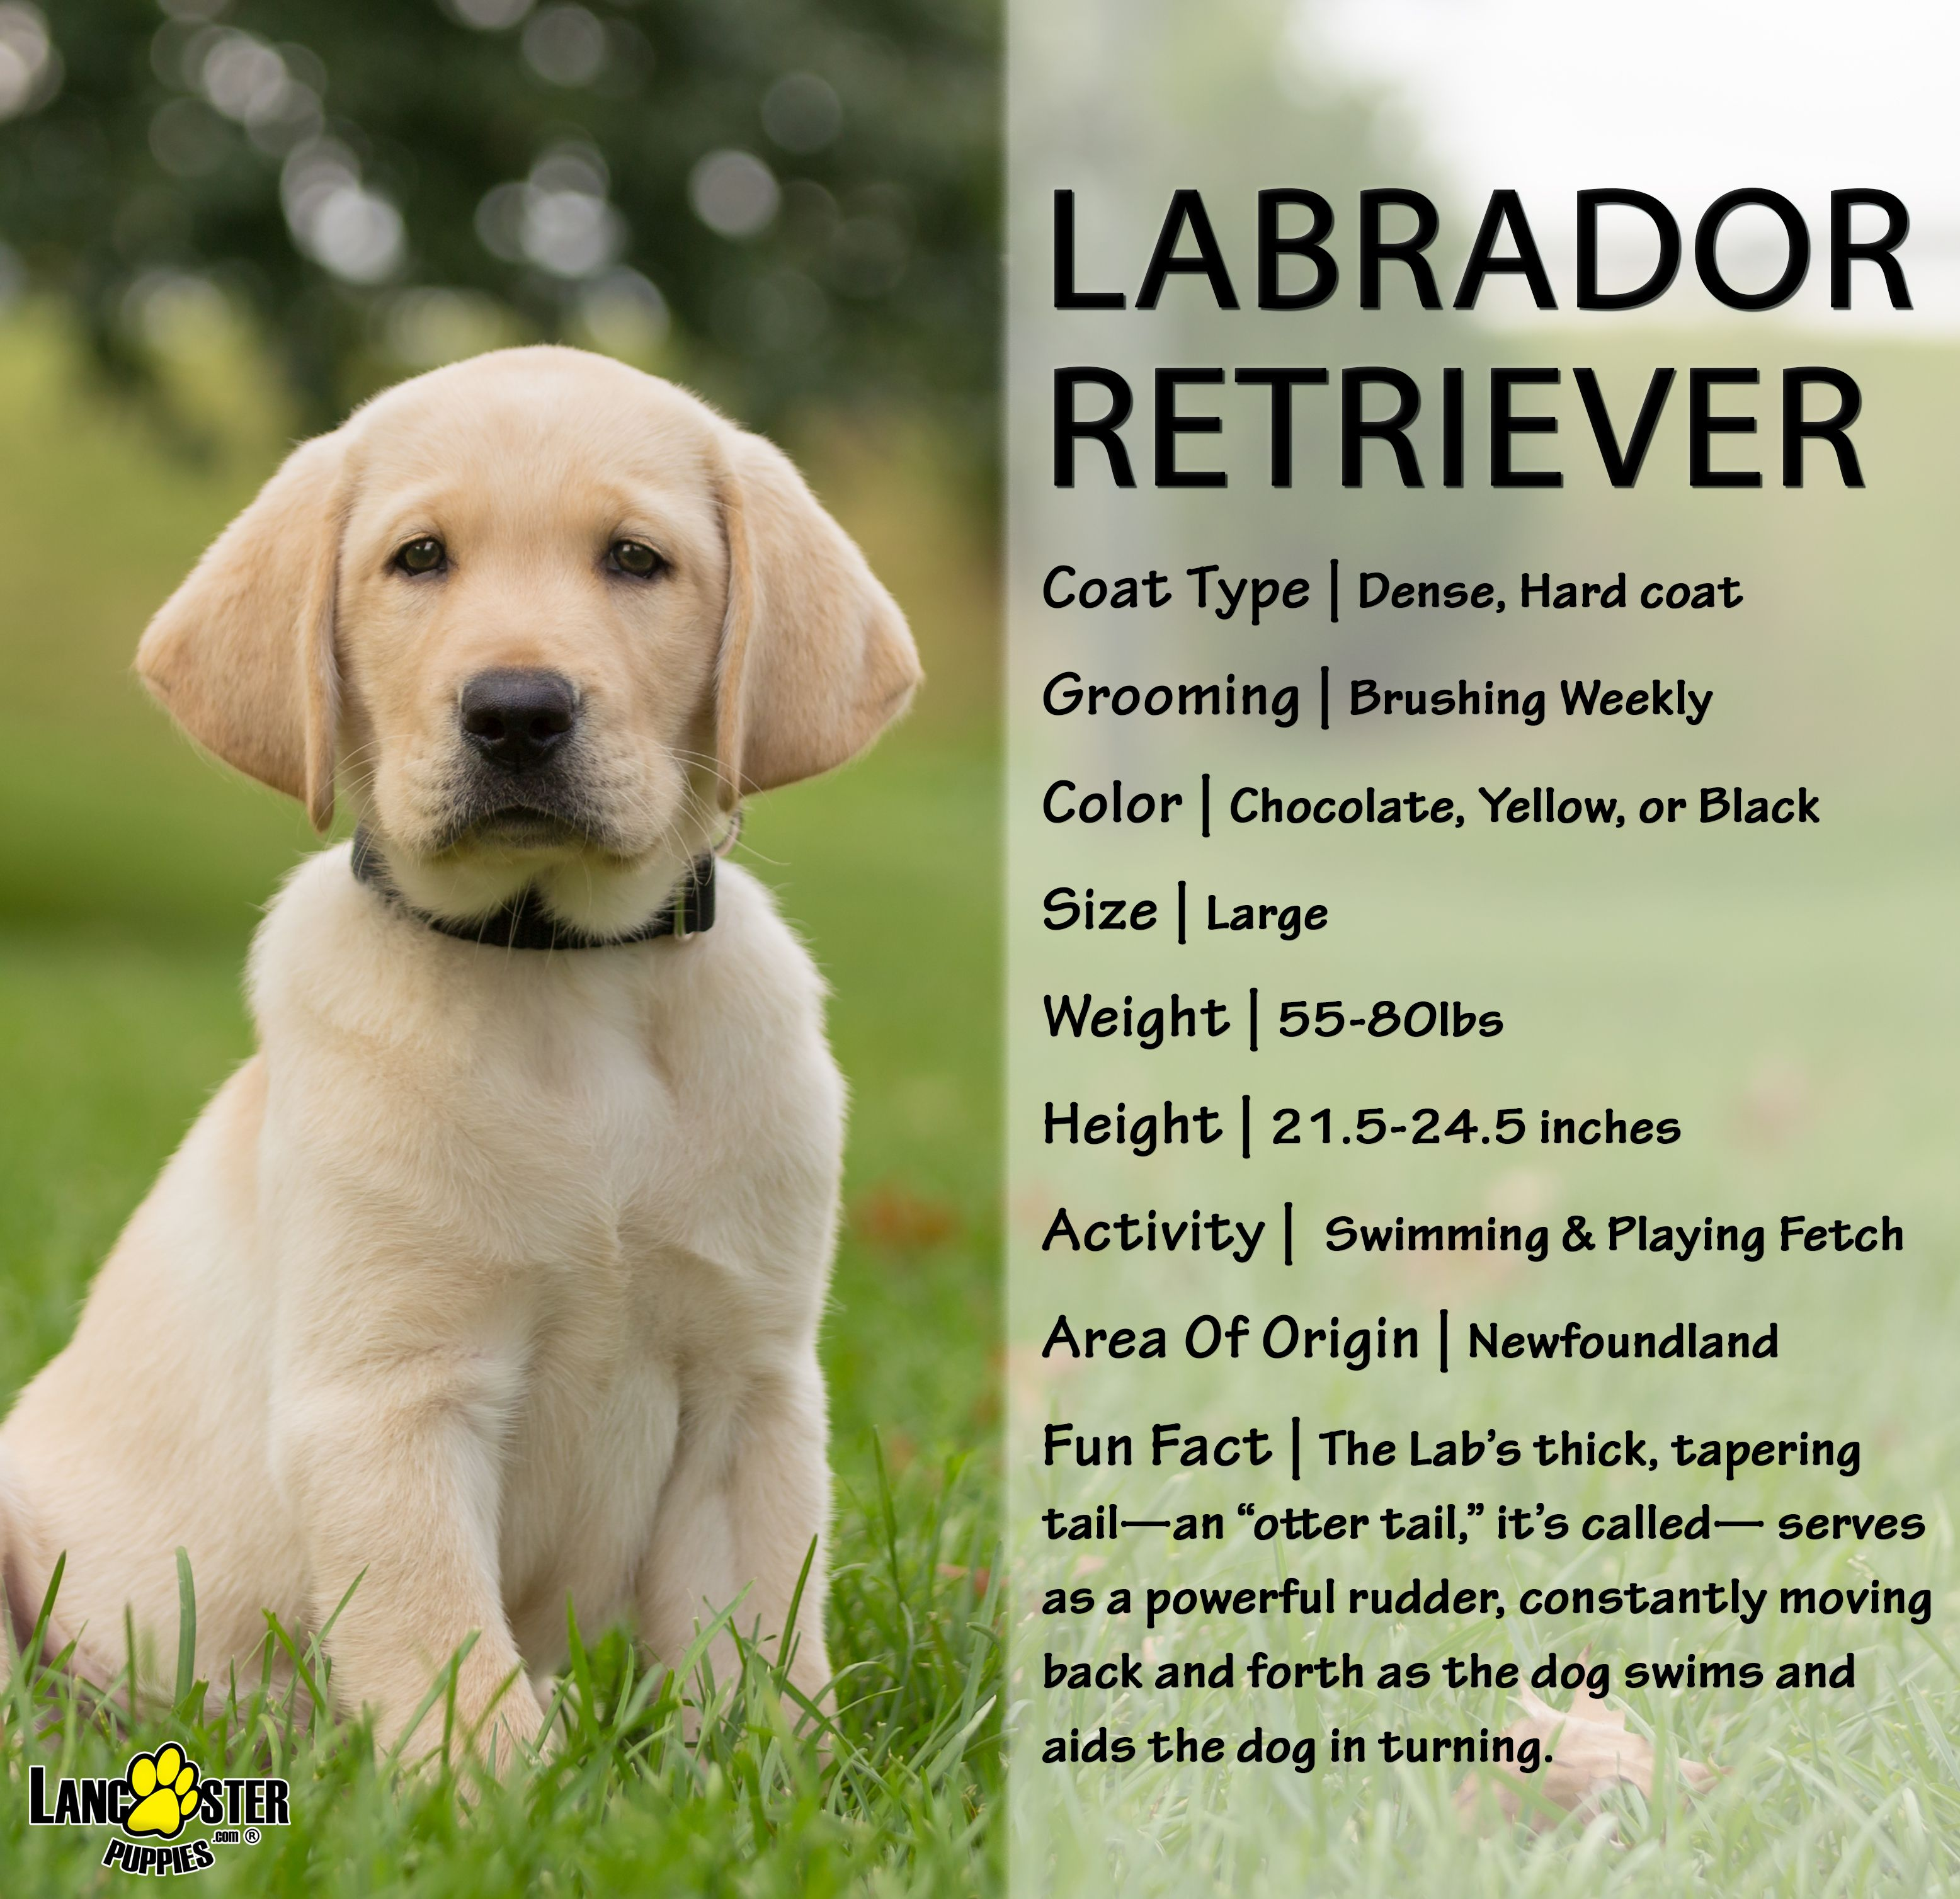 Pin By Kathe S On Labradors In 2020 Labrador Retriever Labrador Retriever Puppies Retriever